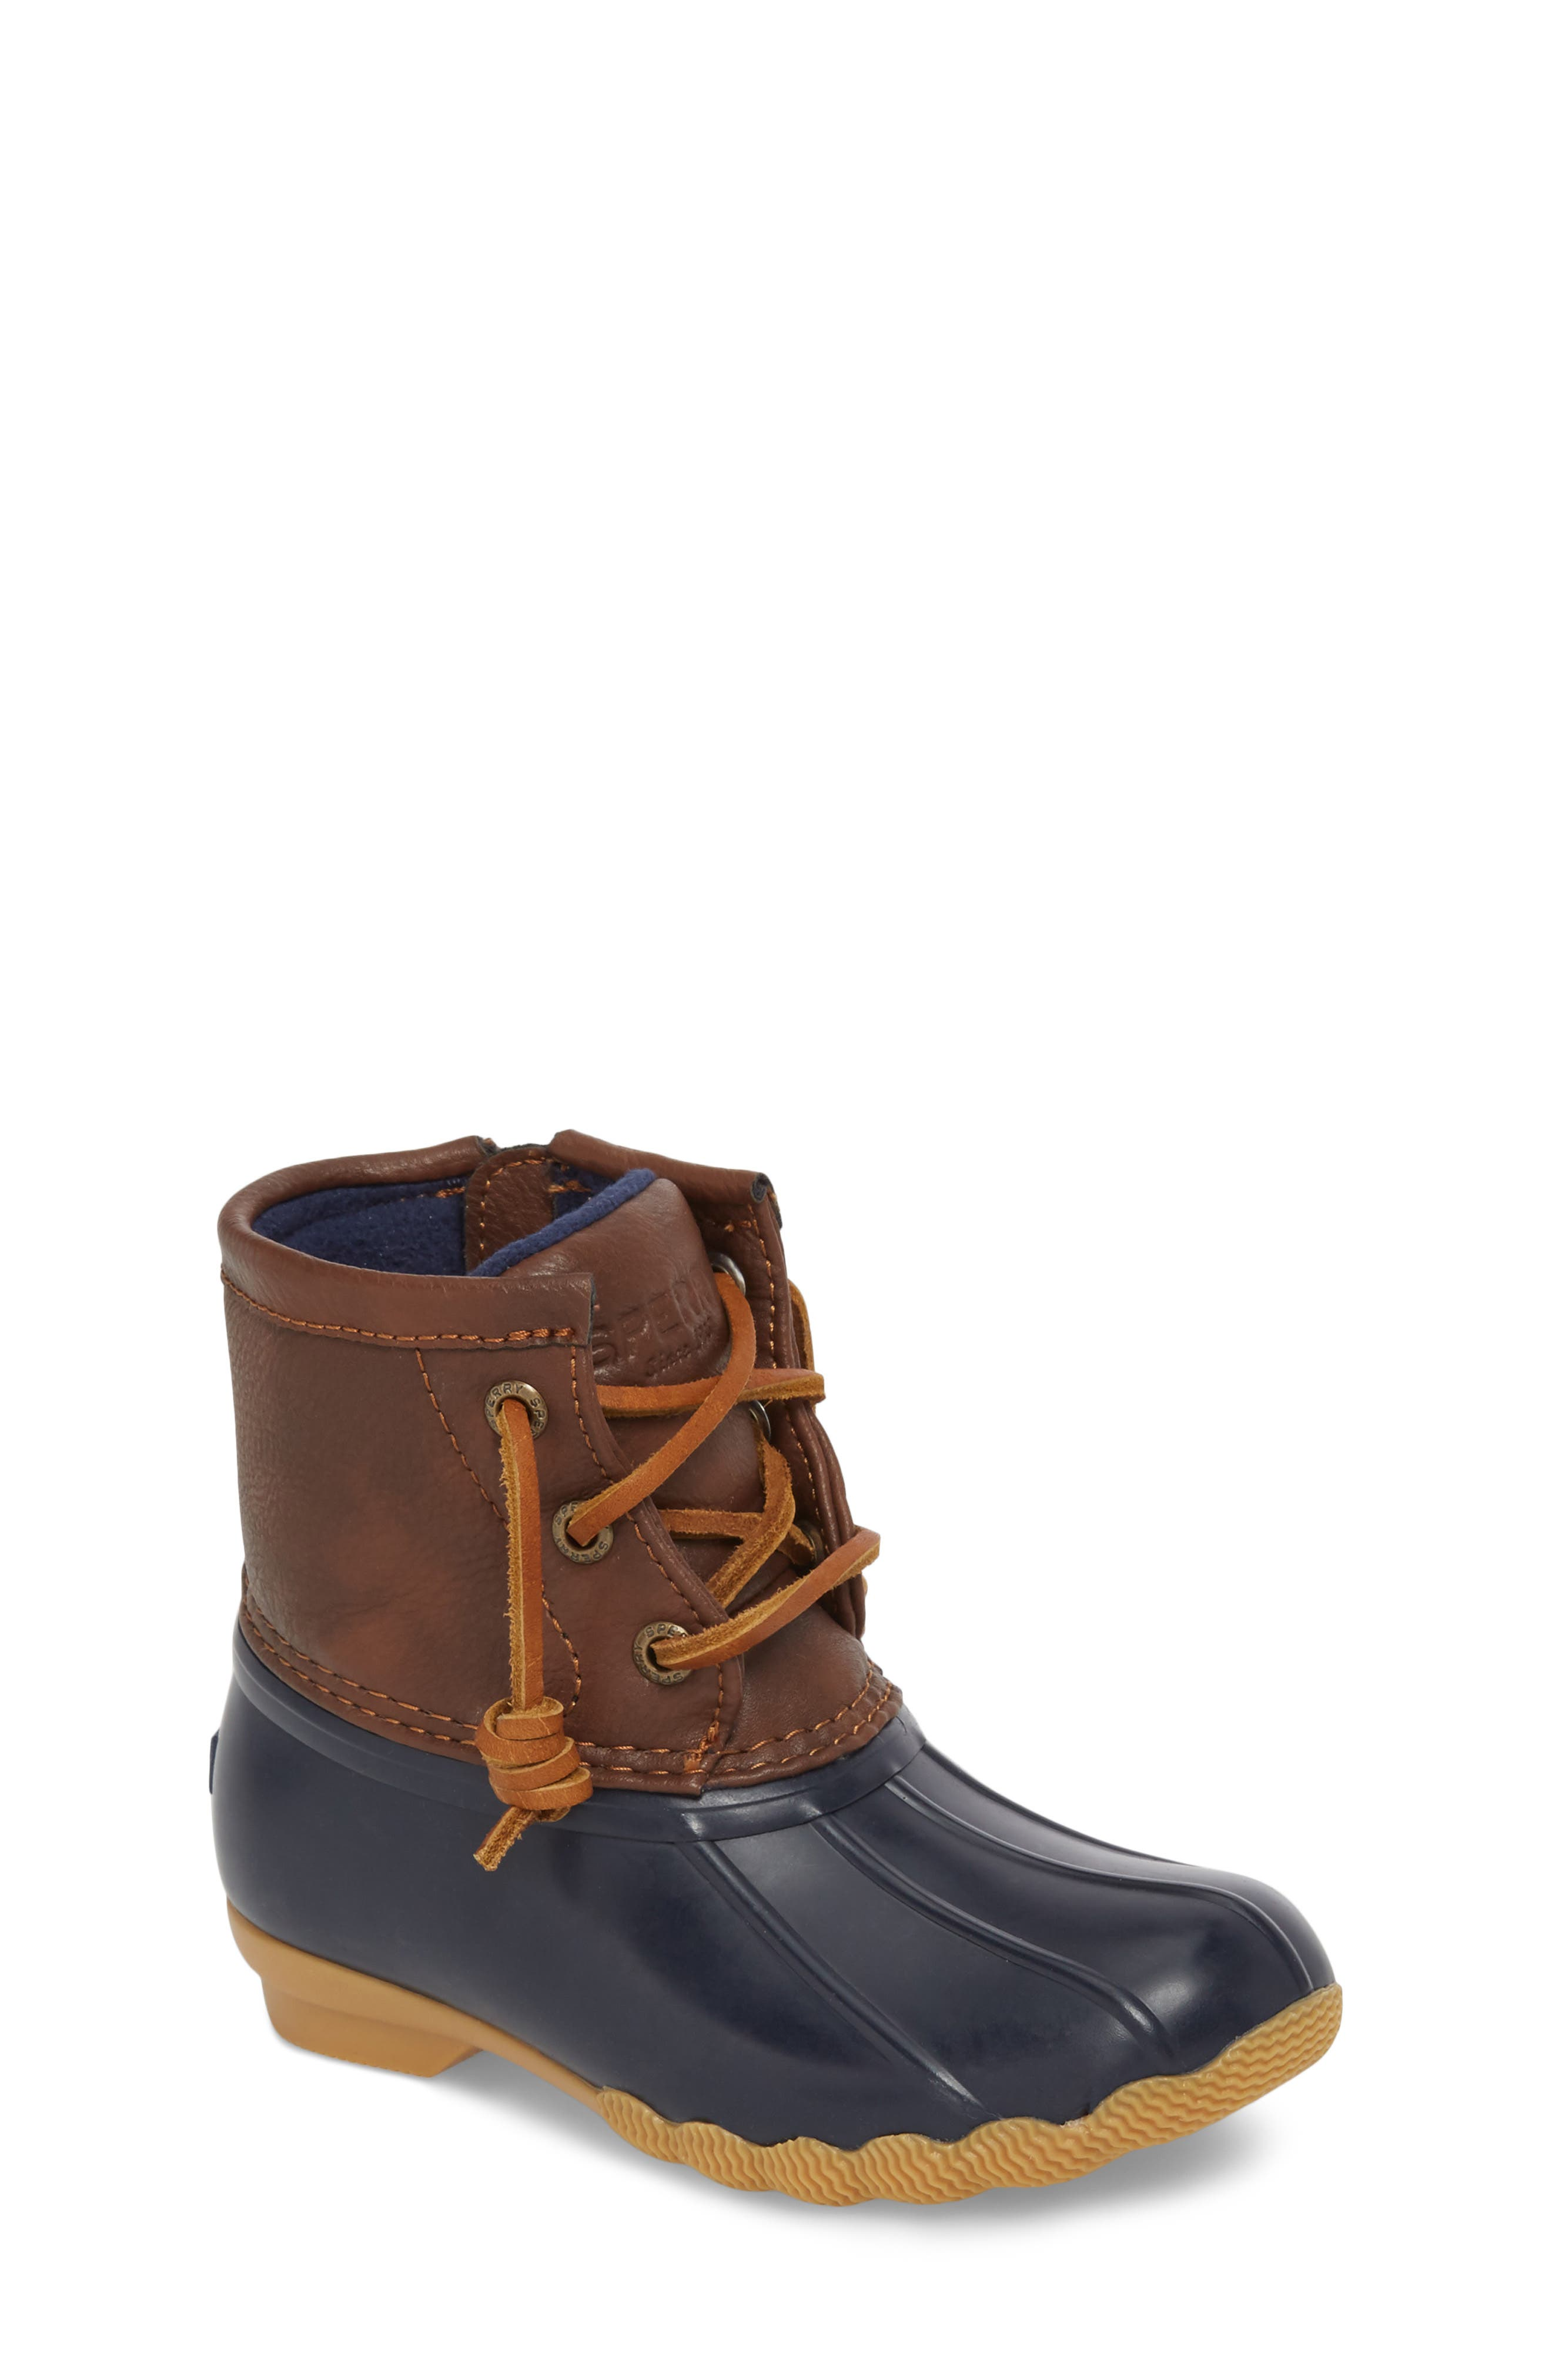 Saltwater Duck Boot,                             Main thumbnail 1, color,                             Navy/ Navy